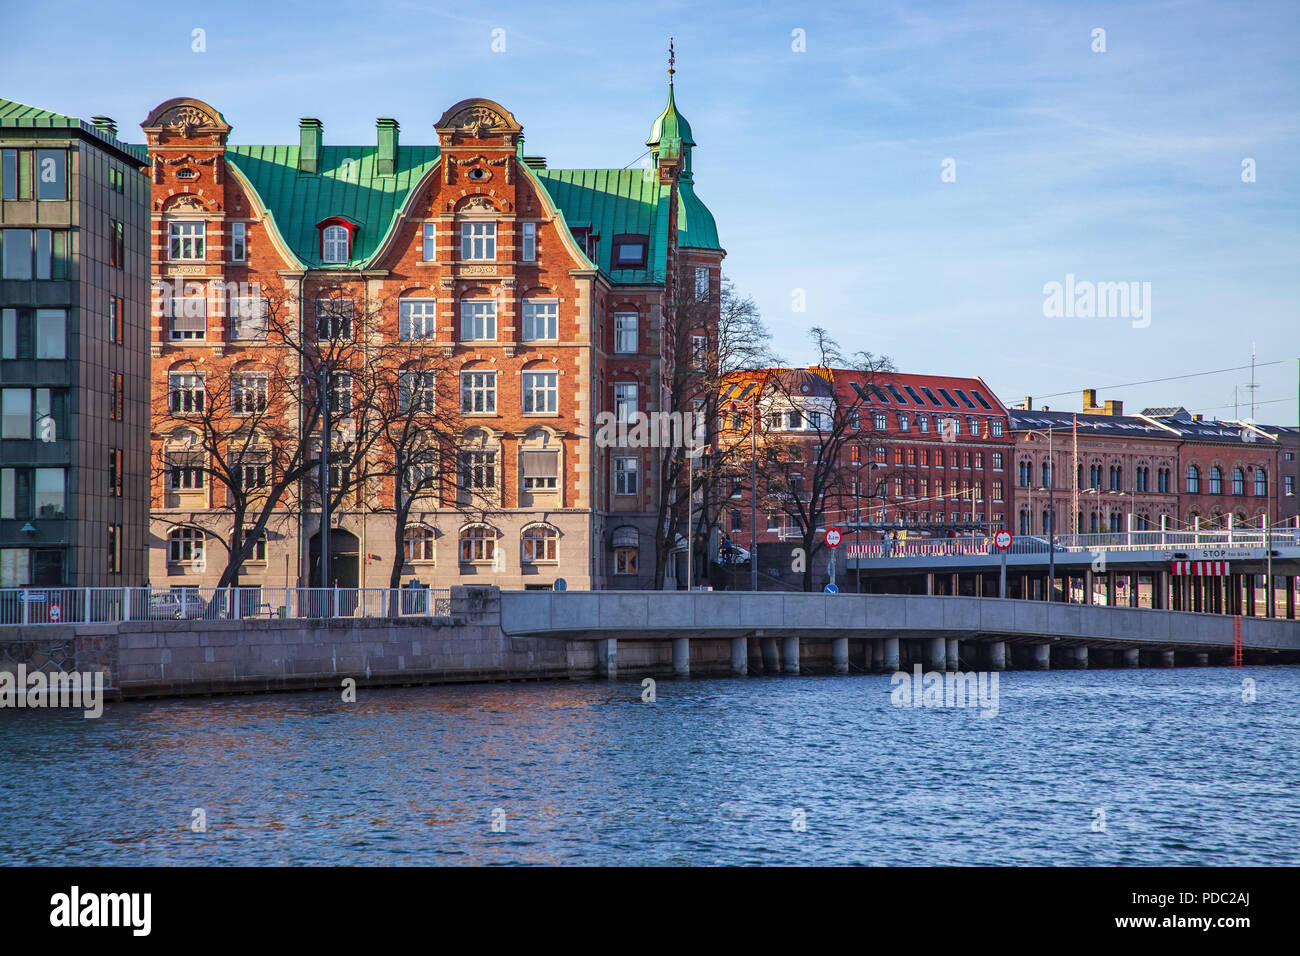 front view of cityscape with buildings and river in Copenhagen, Denmark - Stock Image